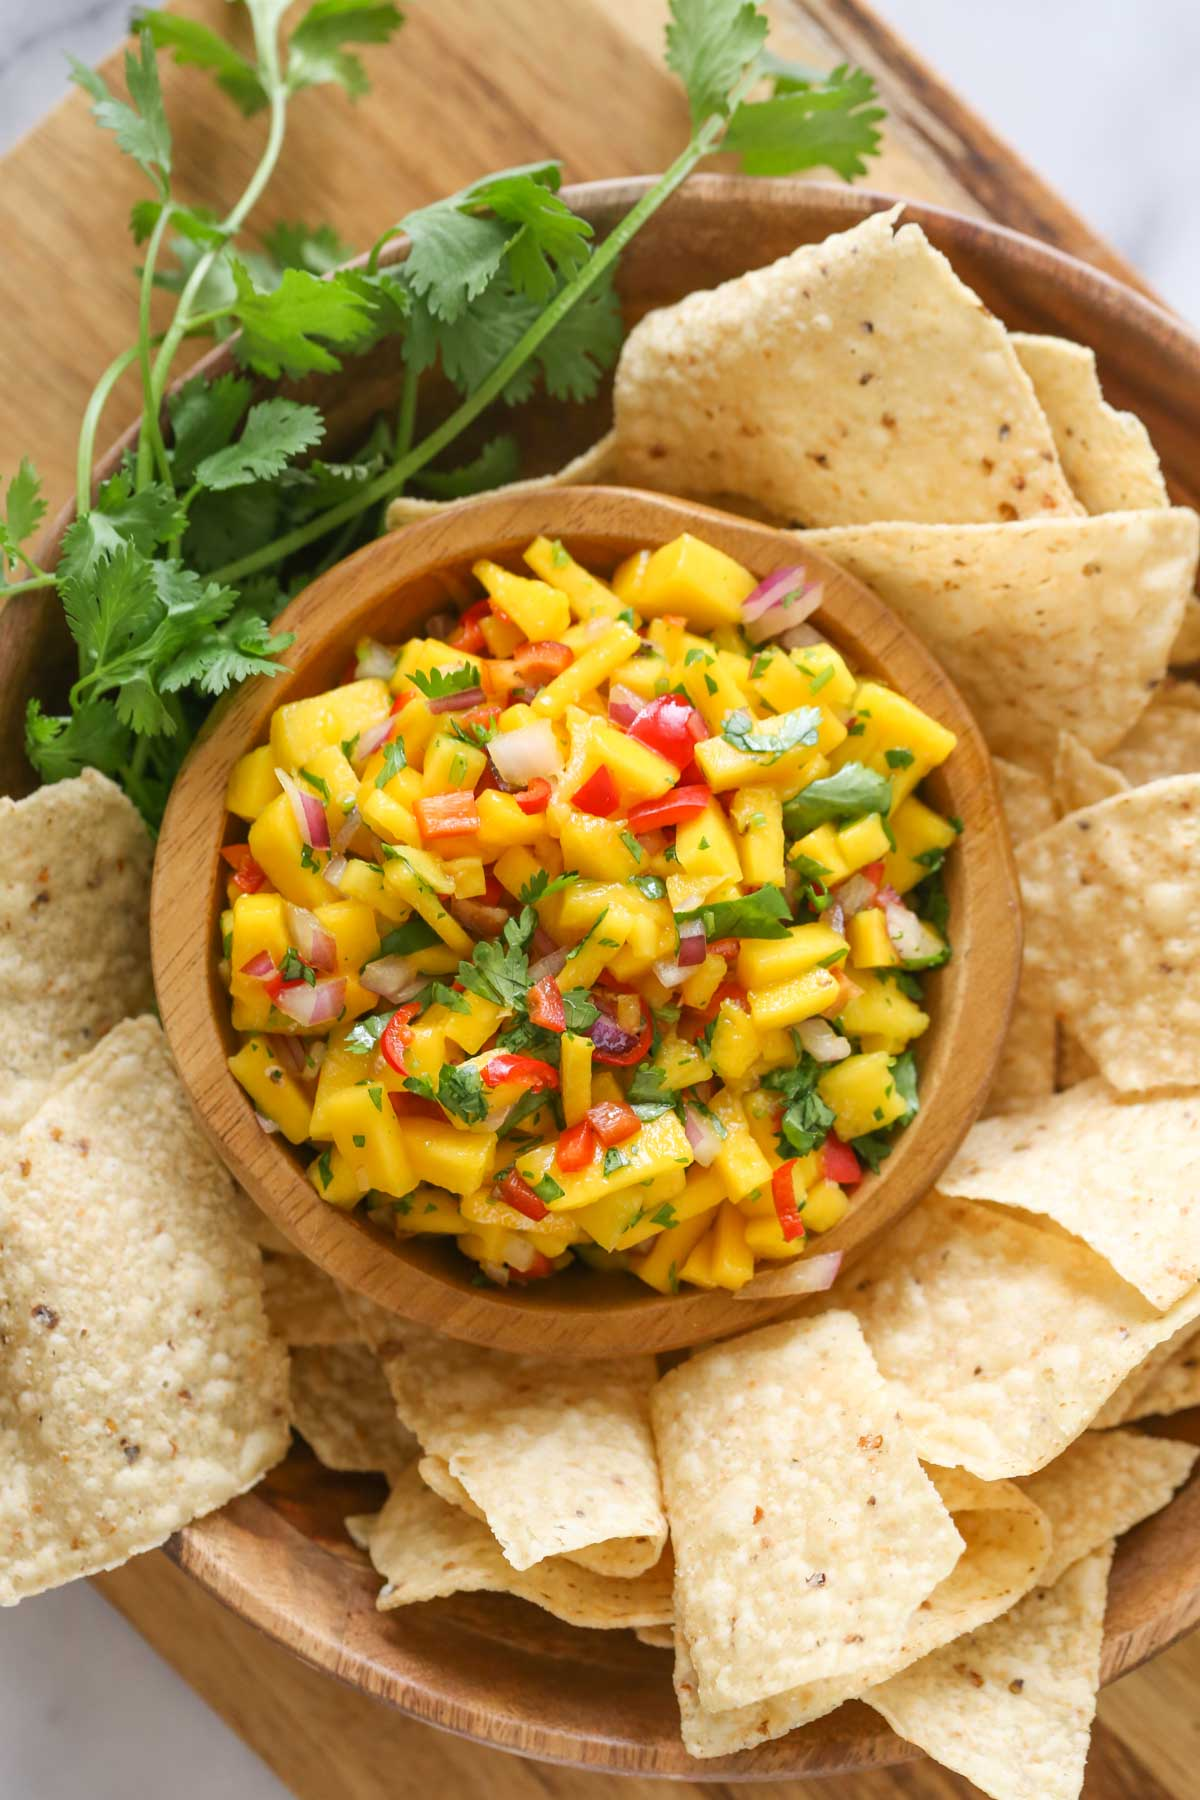 Overhead shot of a wood bowl of Mango Lime Salsa sitting inside a larger wood bowl with tortilla chips and fresh cilantro, all sitting on a wood cutting board.